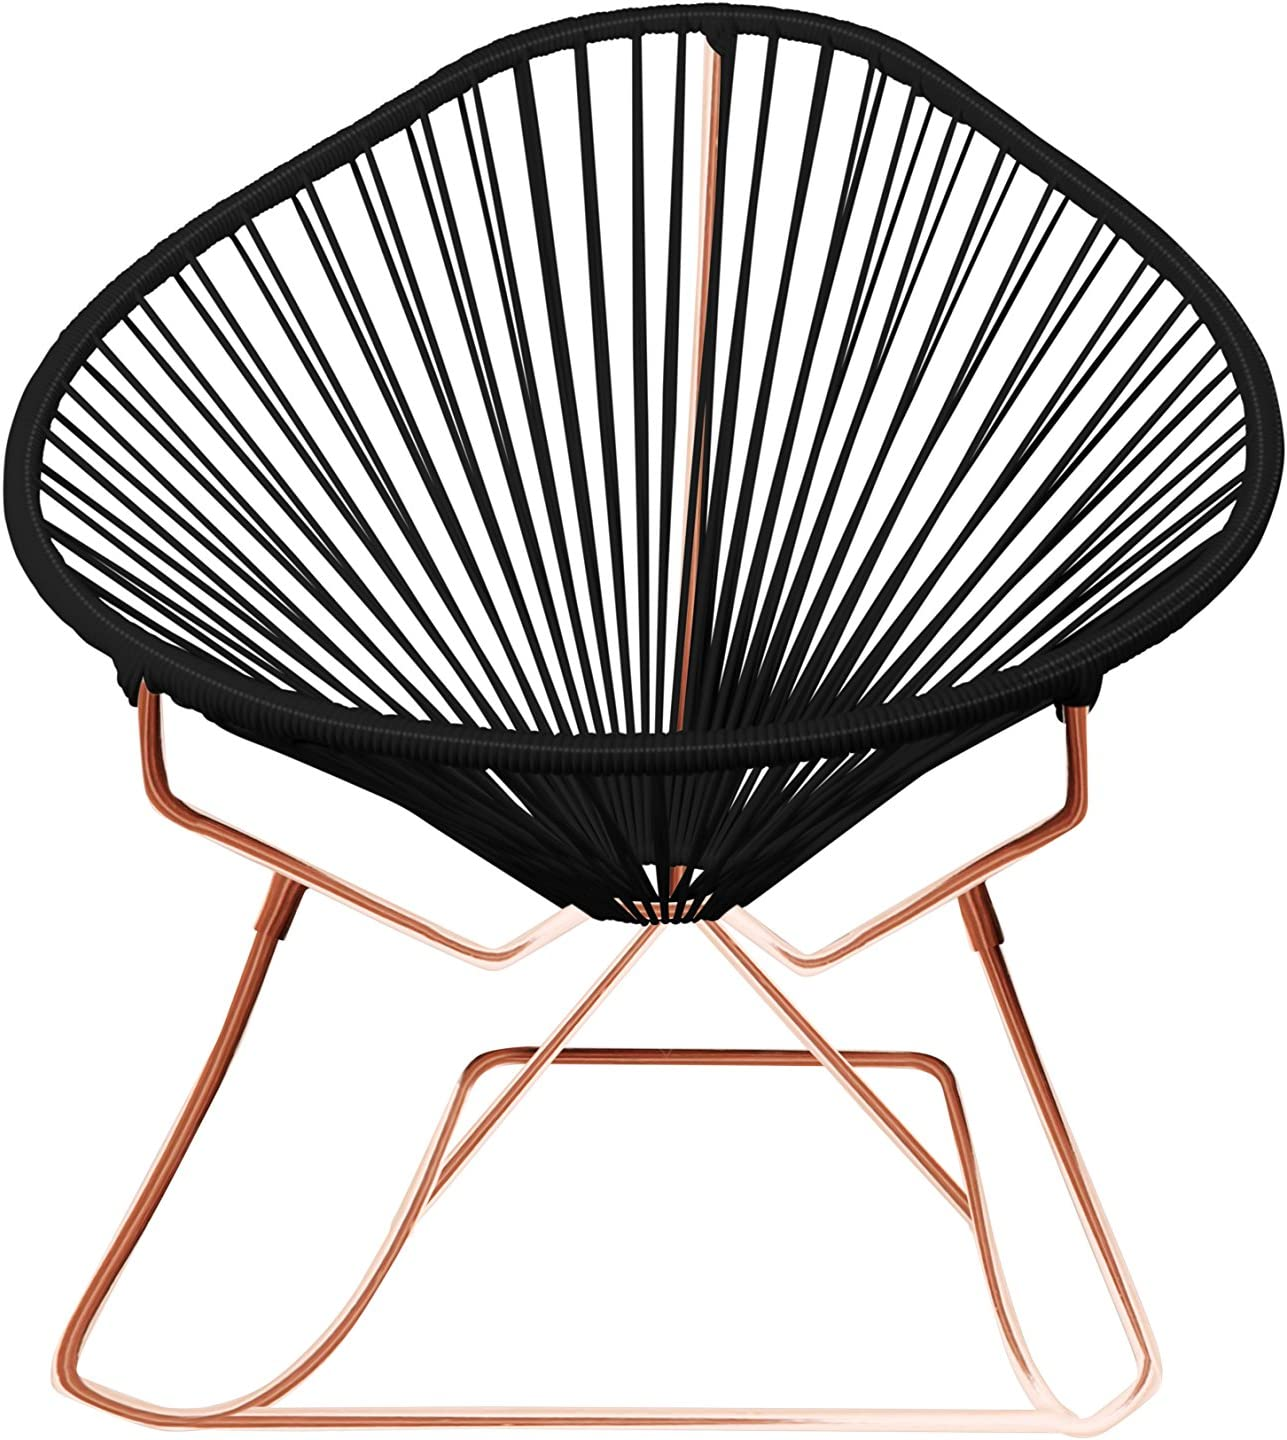 Innit Designs i03-04-01 Rocking Chair Black Rocker cheap Our shop OFFers the best service Acapulco Wea